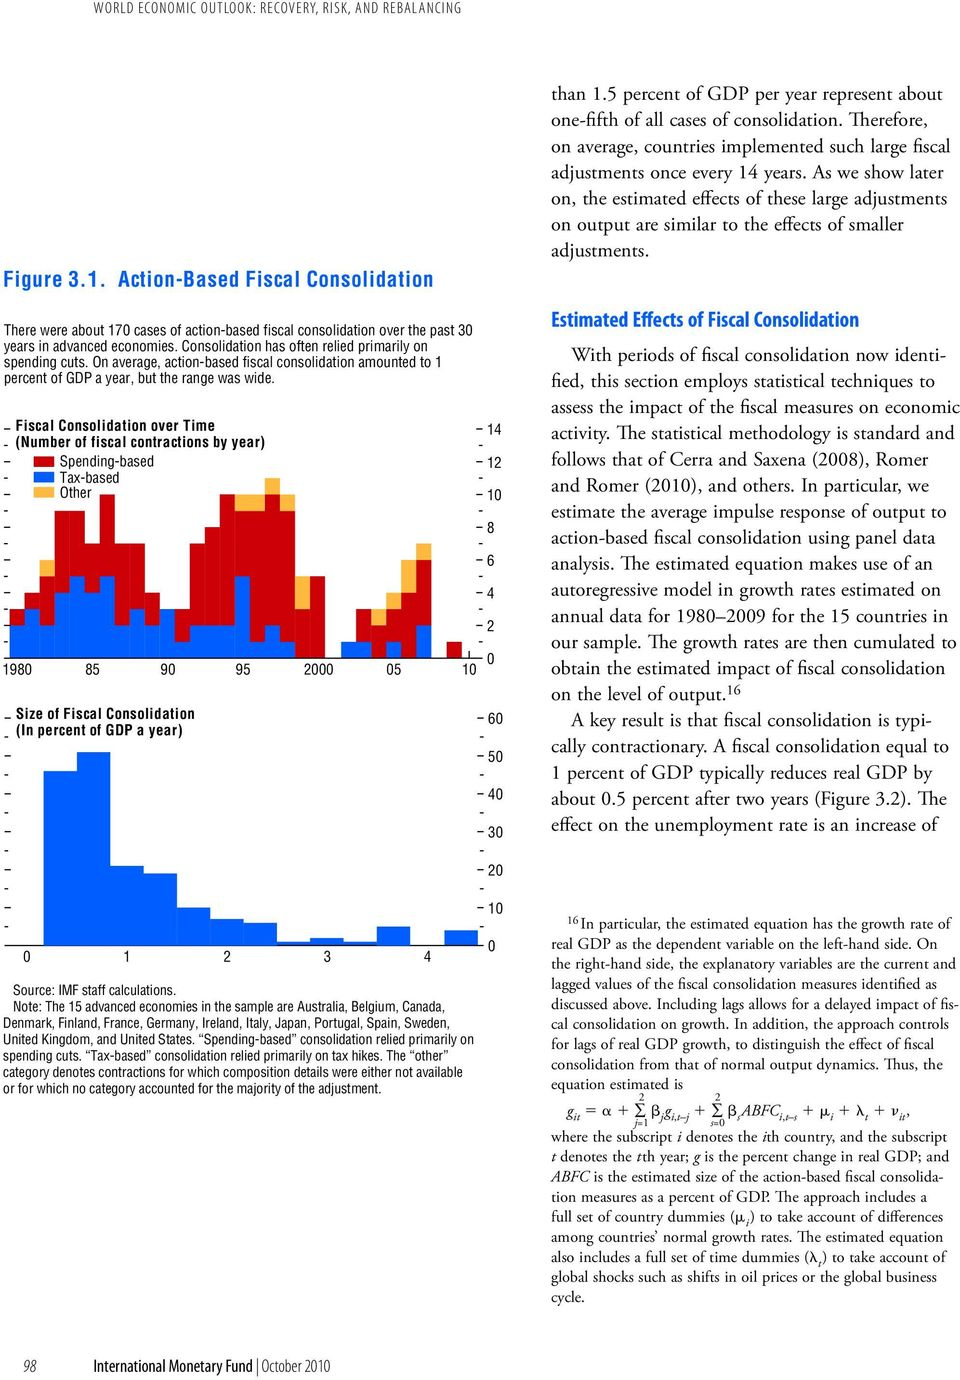 On average, action-based fiscal consolidation amounted to 1 percent of GDP a year, but the range was wide.